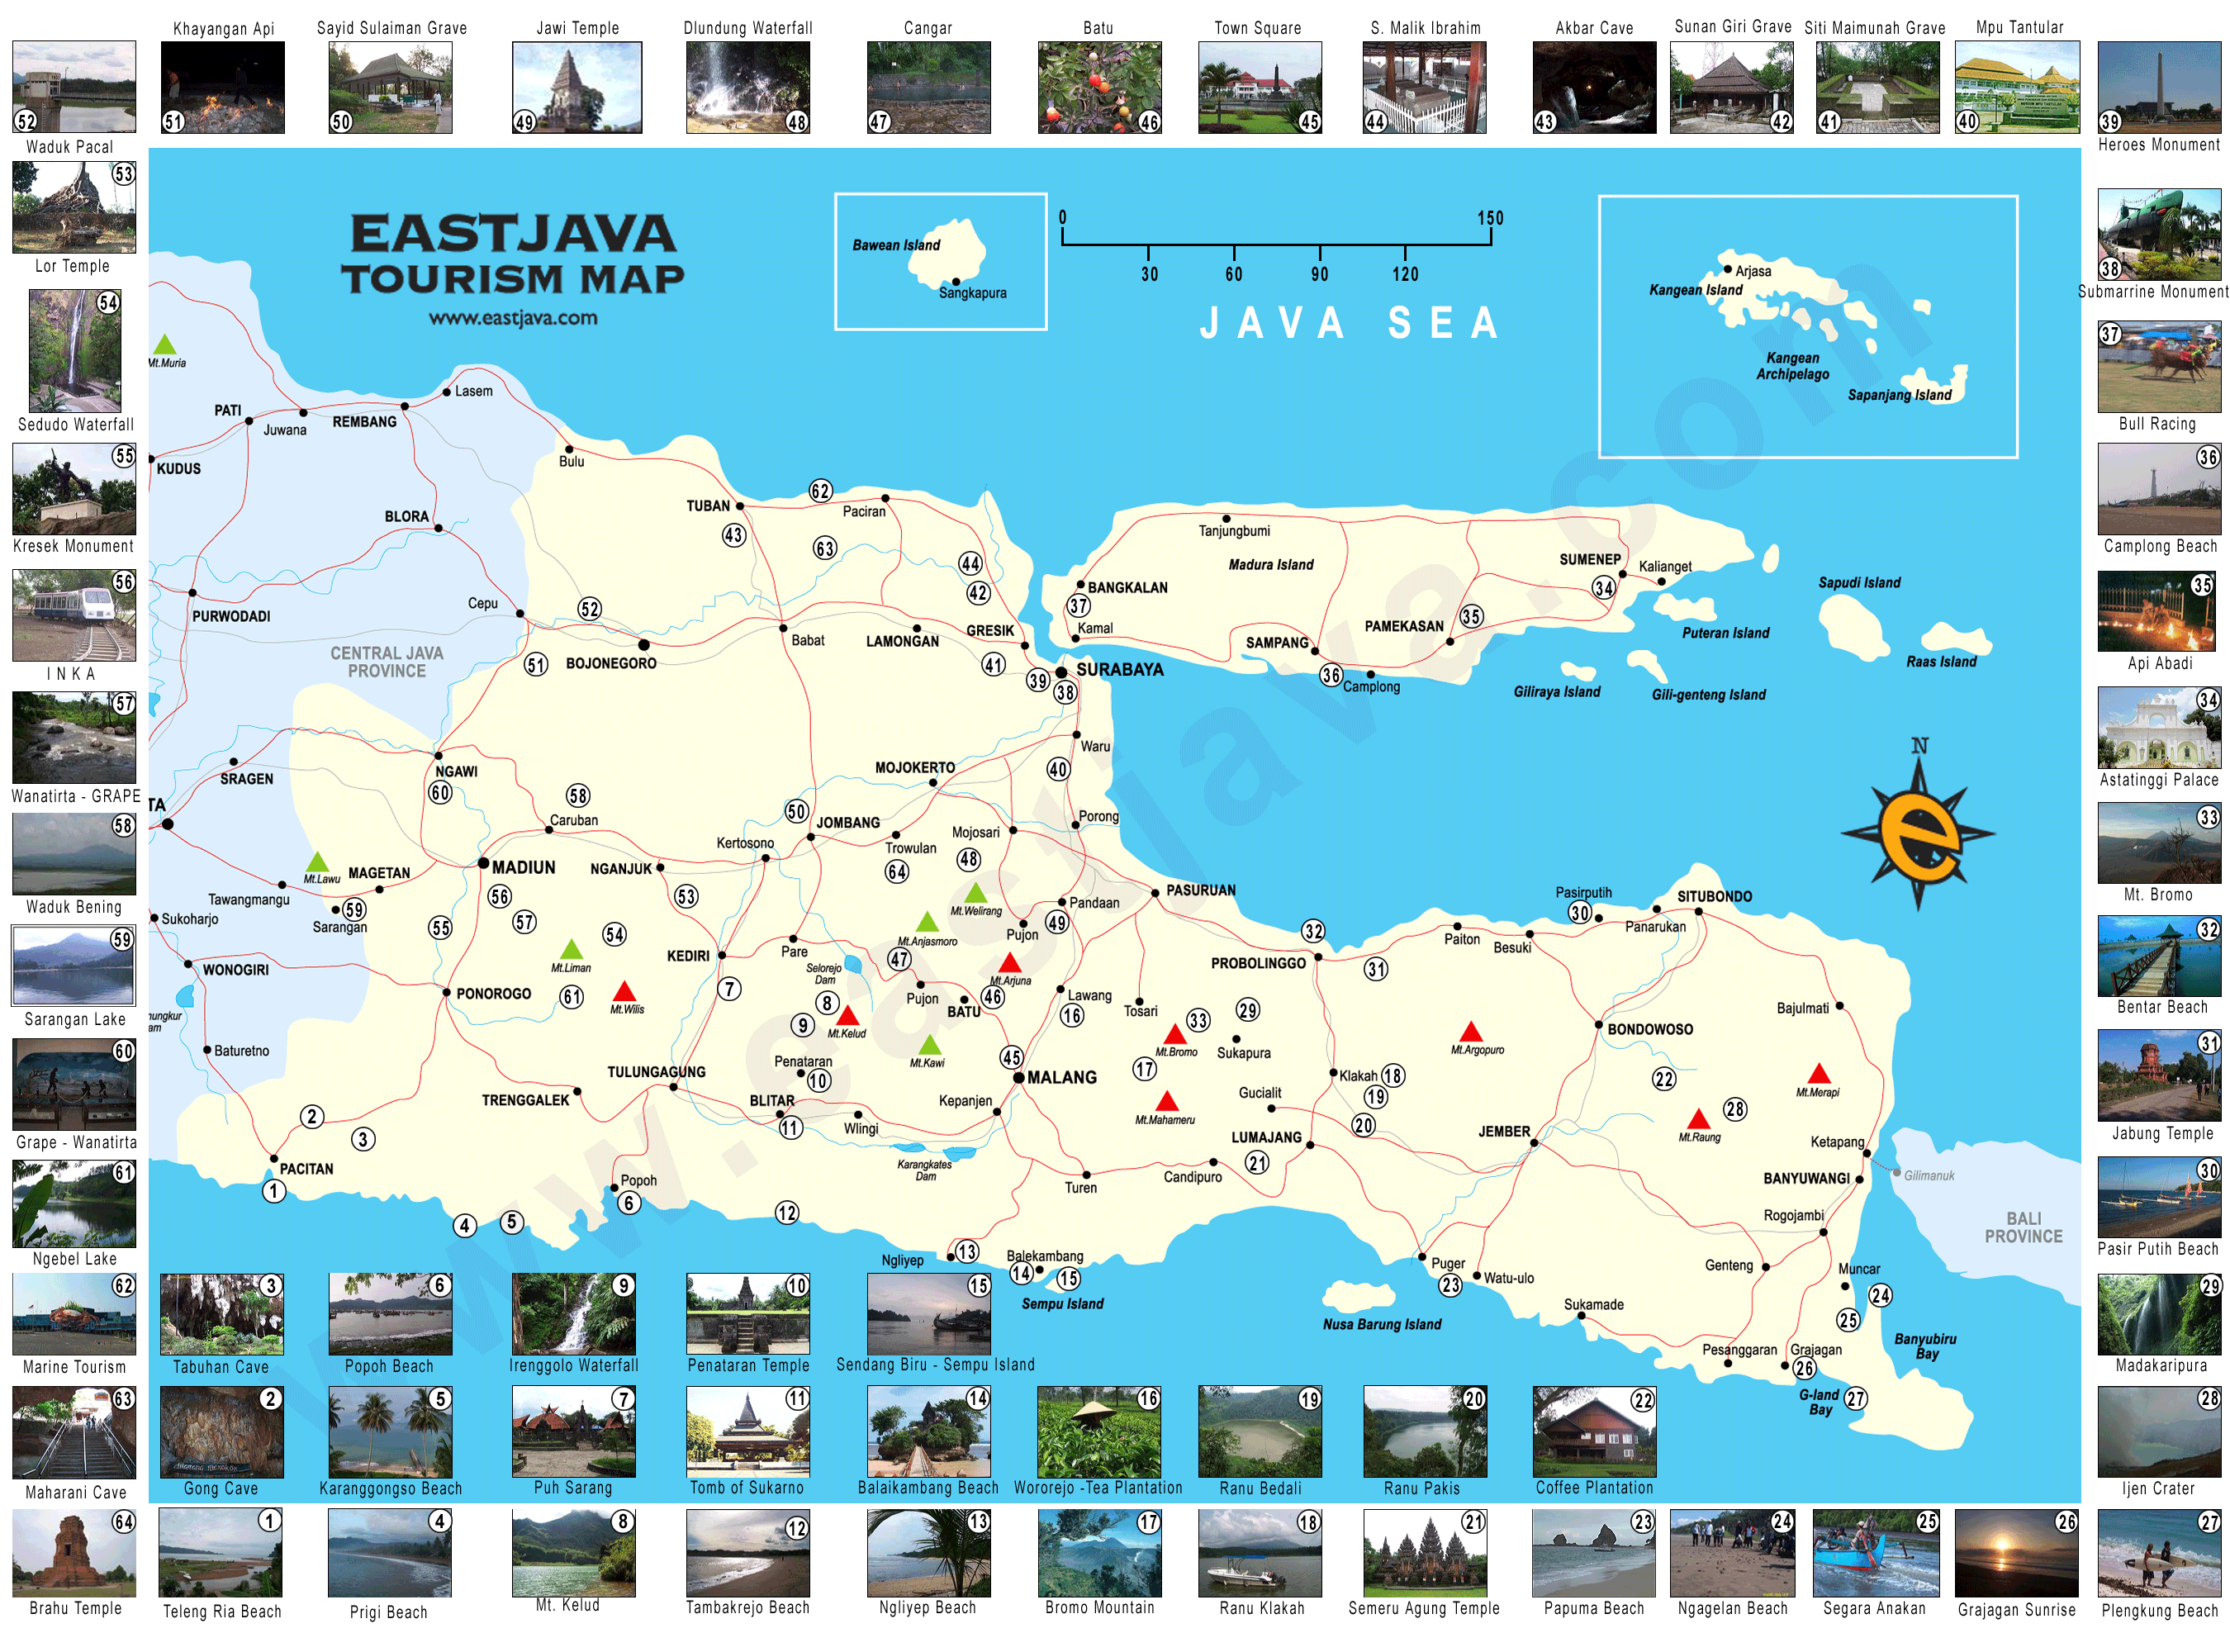 Map of East Java Peta Jawa Timur East Java Tourism Map